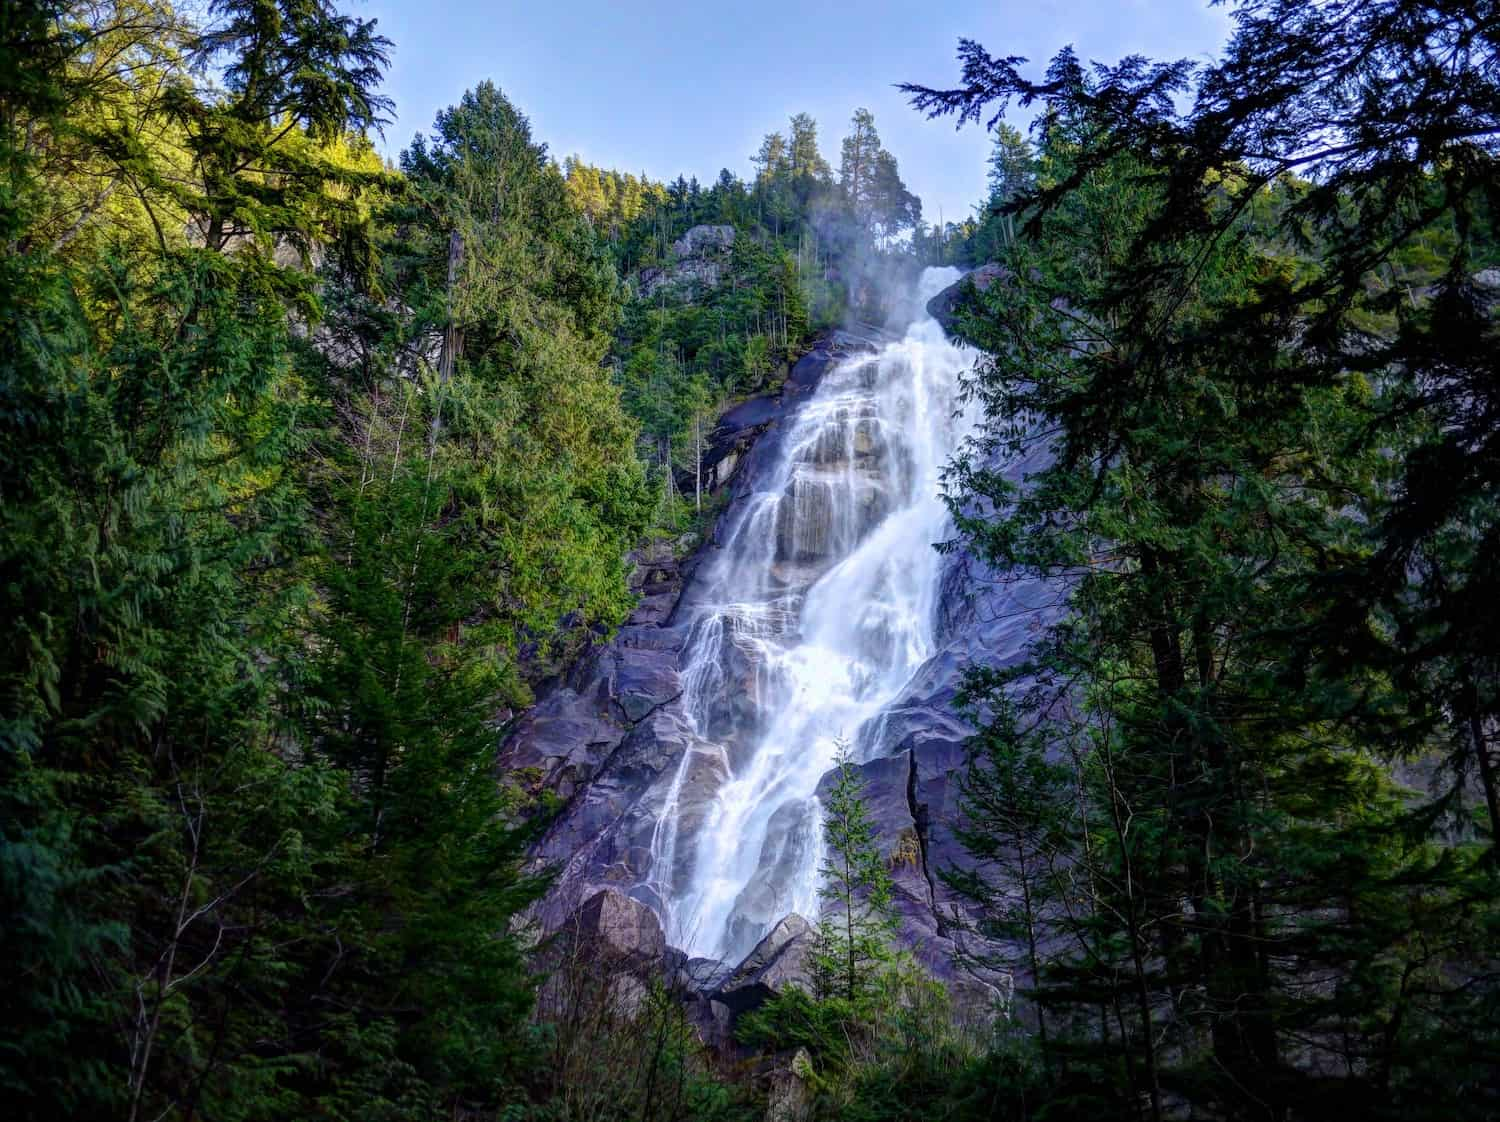 Vancouver Cruise Excursions - Shannon Falls - bensonk42 via Flickr